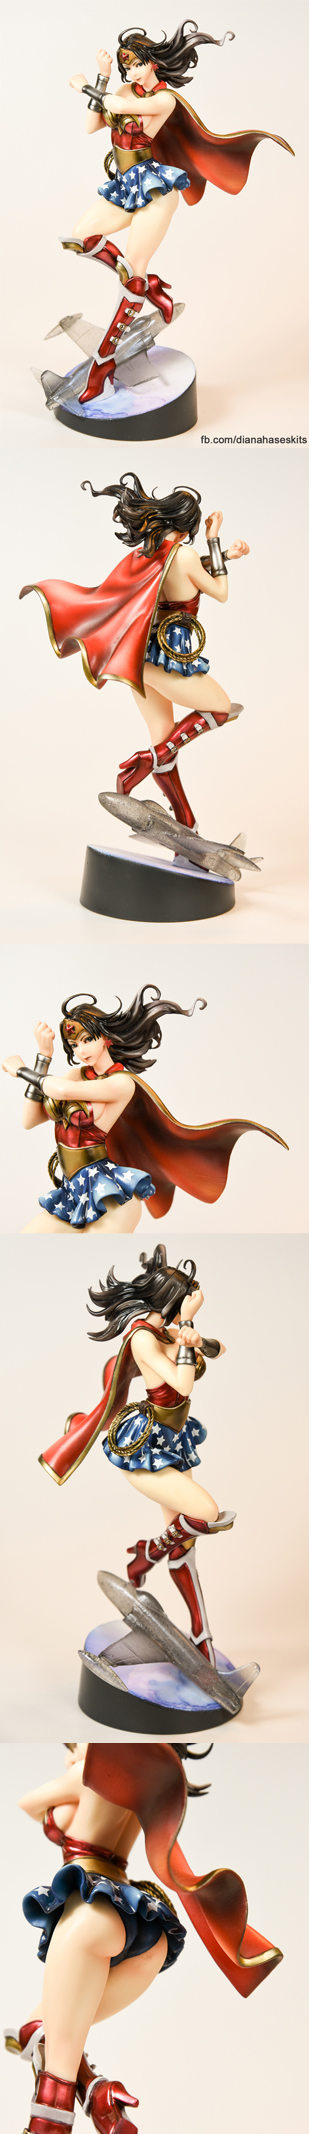 Shunya's Wonder Woman by dianahase by dianahase